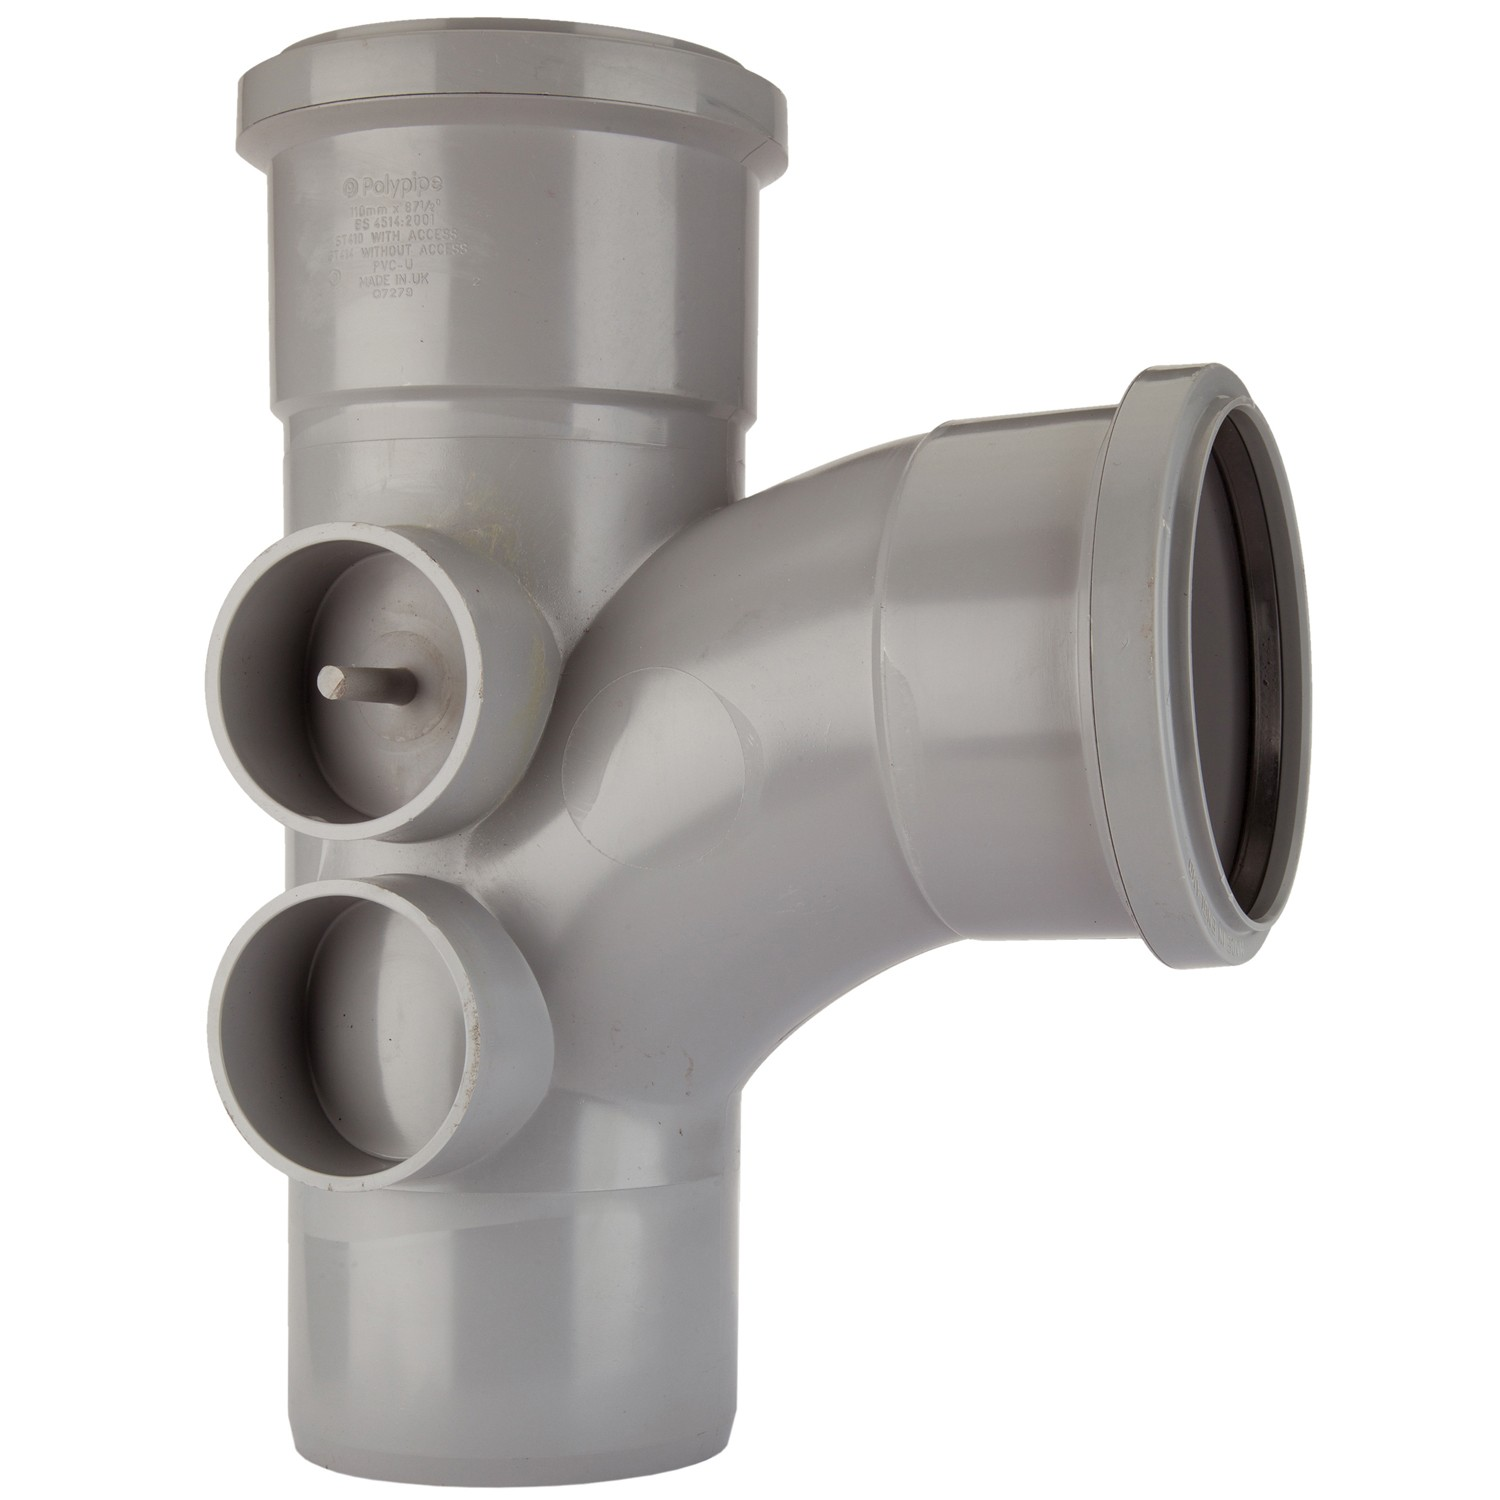 Polypipe 110mm Soil 92.5 Degree Equal Branch with 4 Bosses - Grey